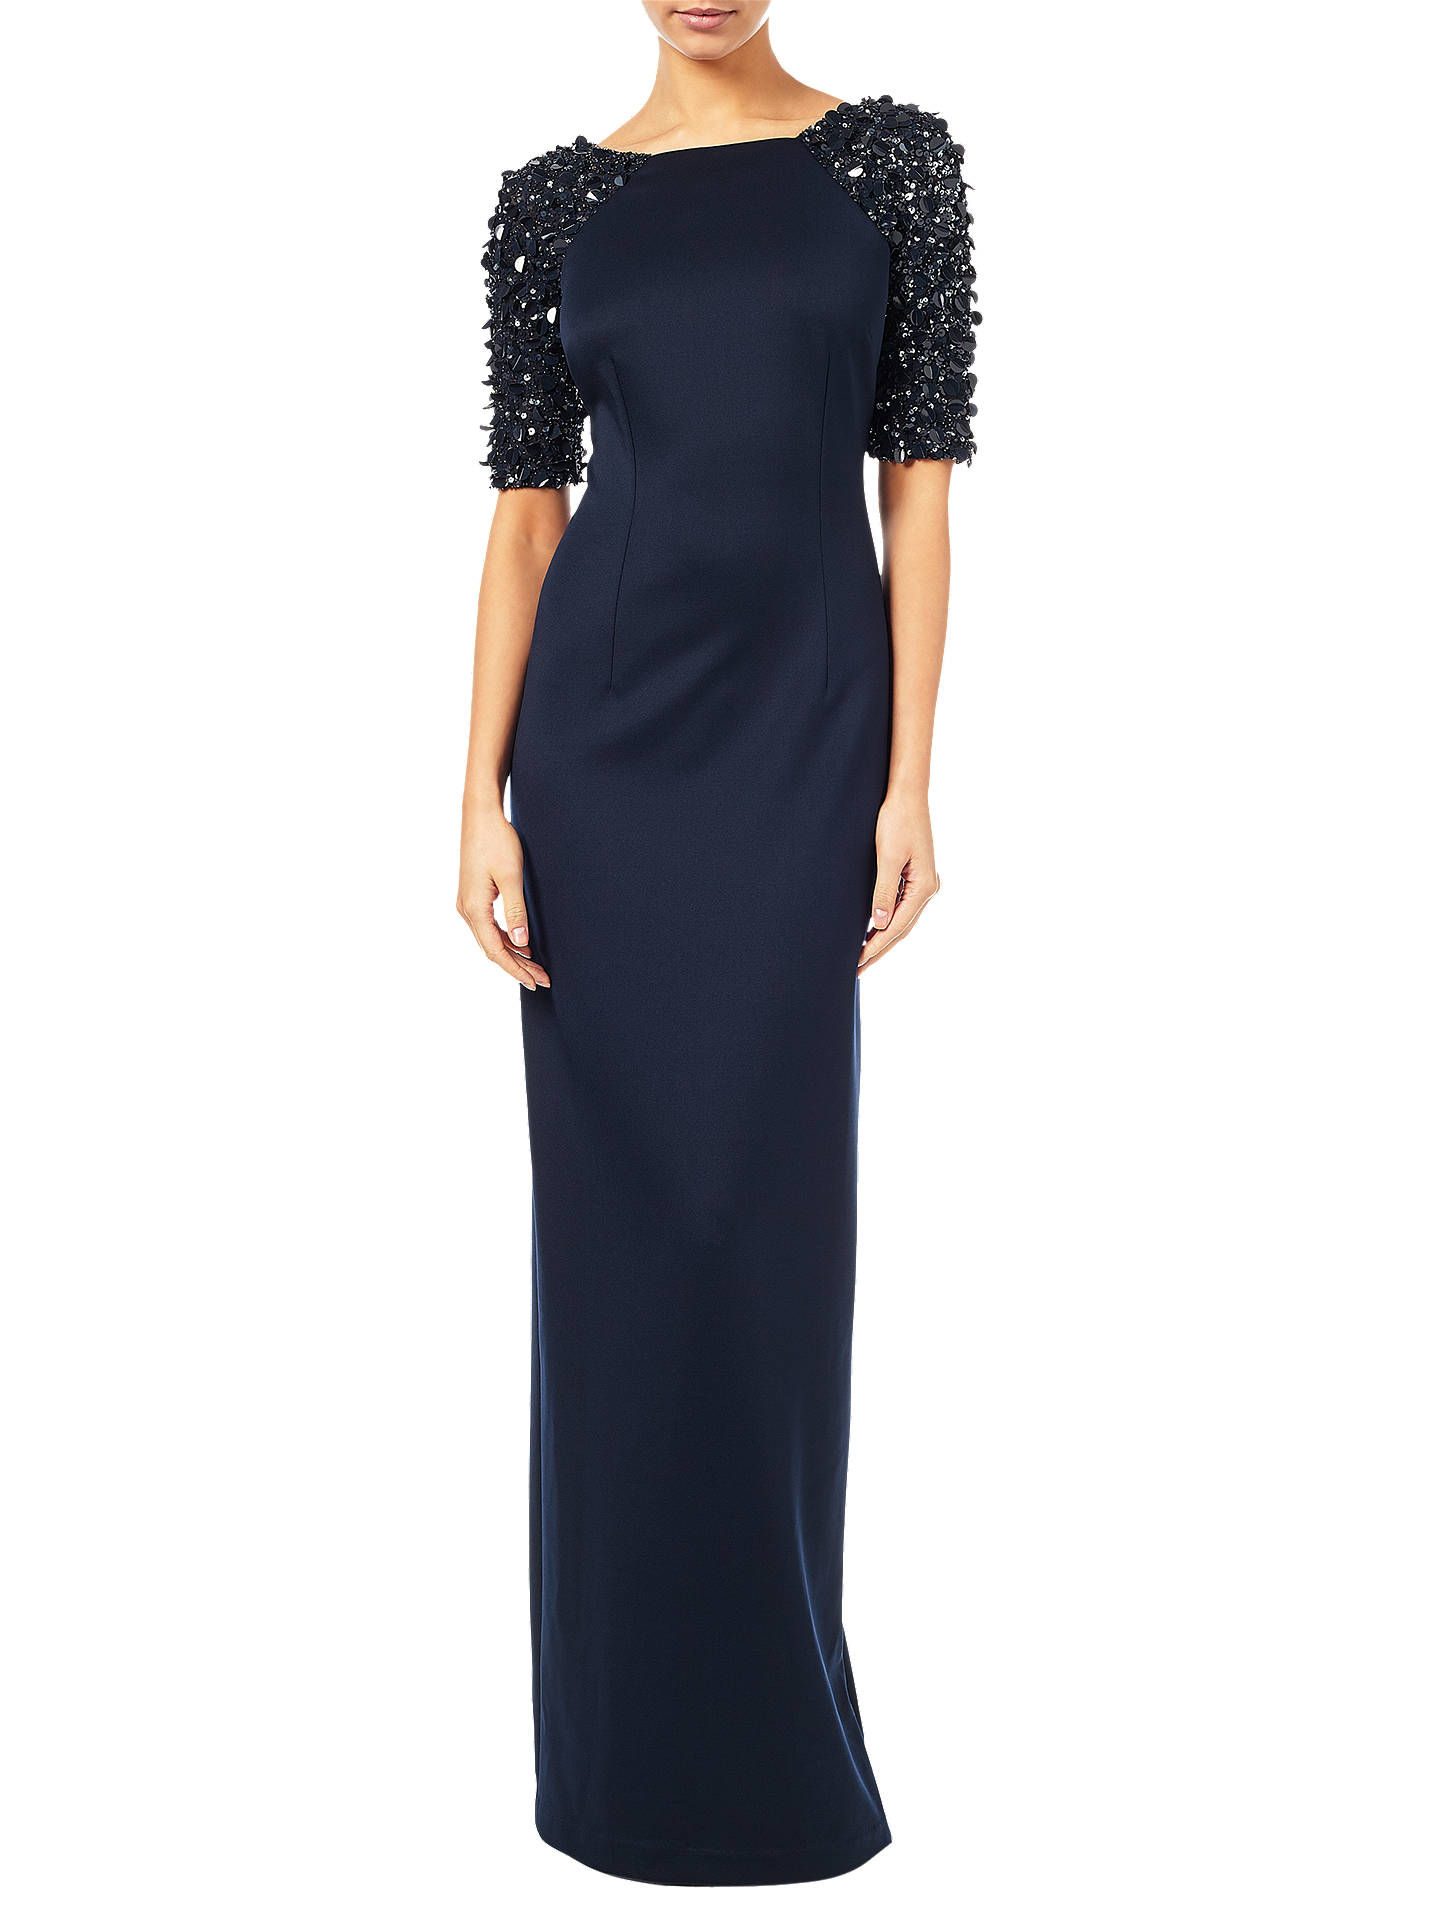 Adrianna Papell Stretch Knit Column Gown, Navy at John Lewis & Partners